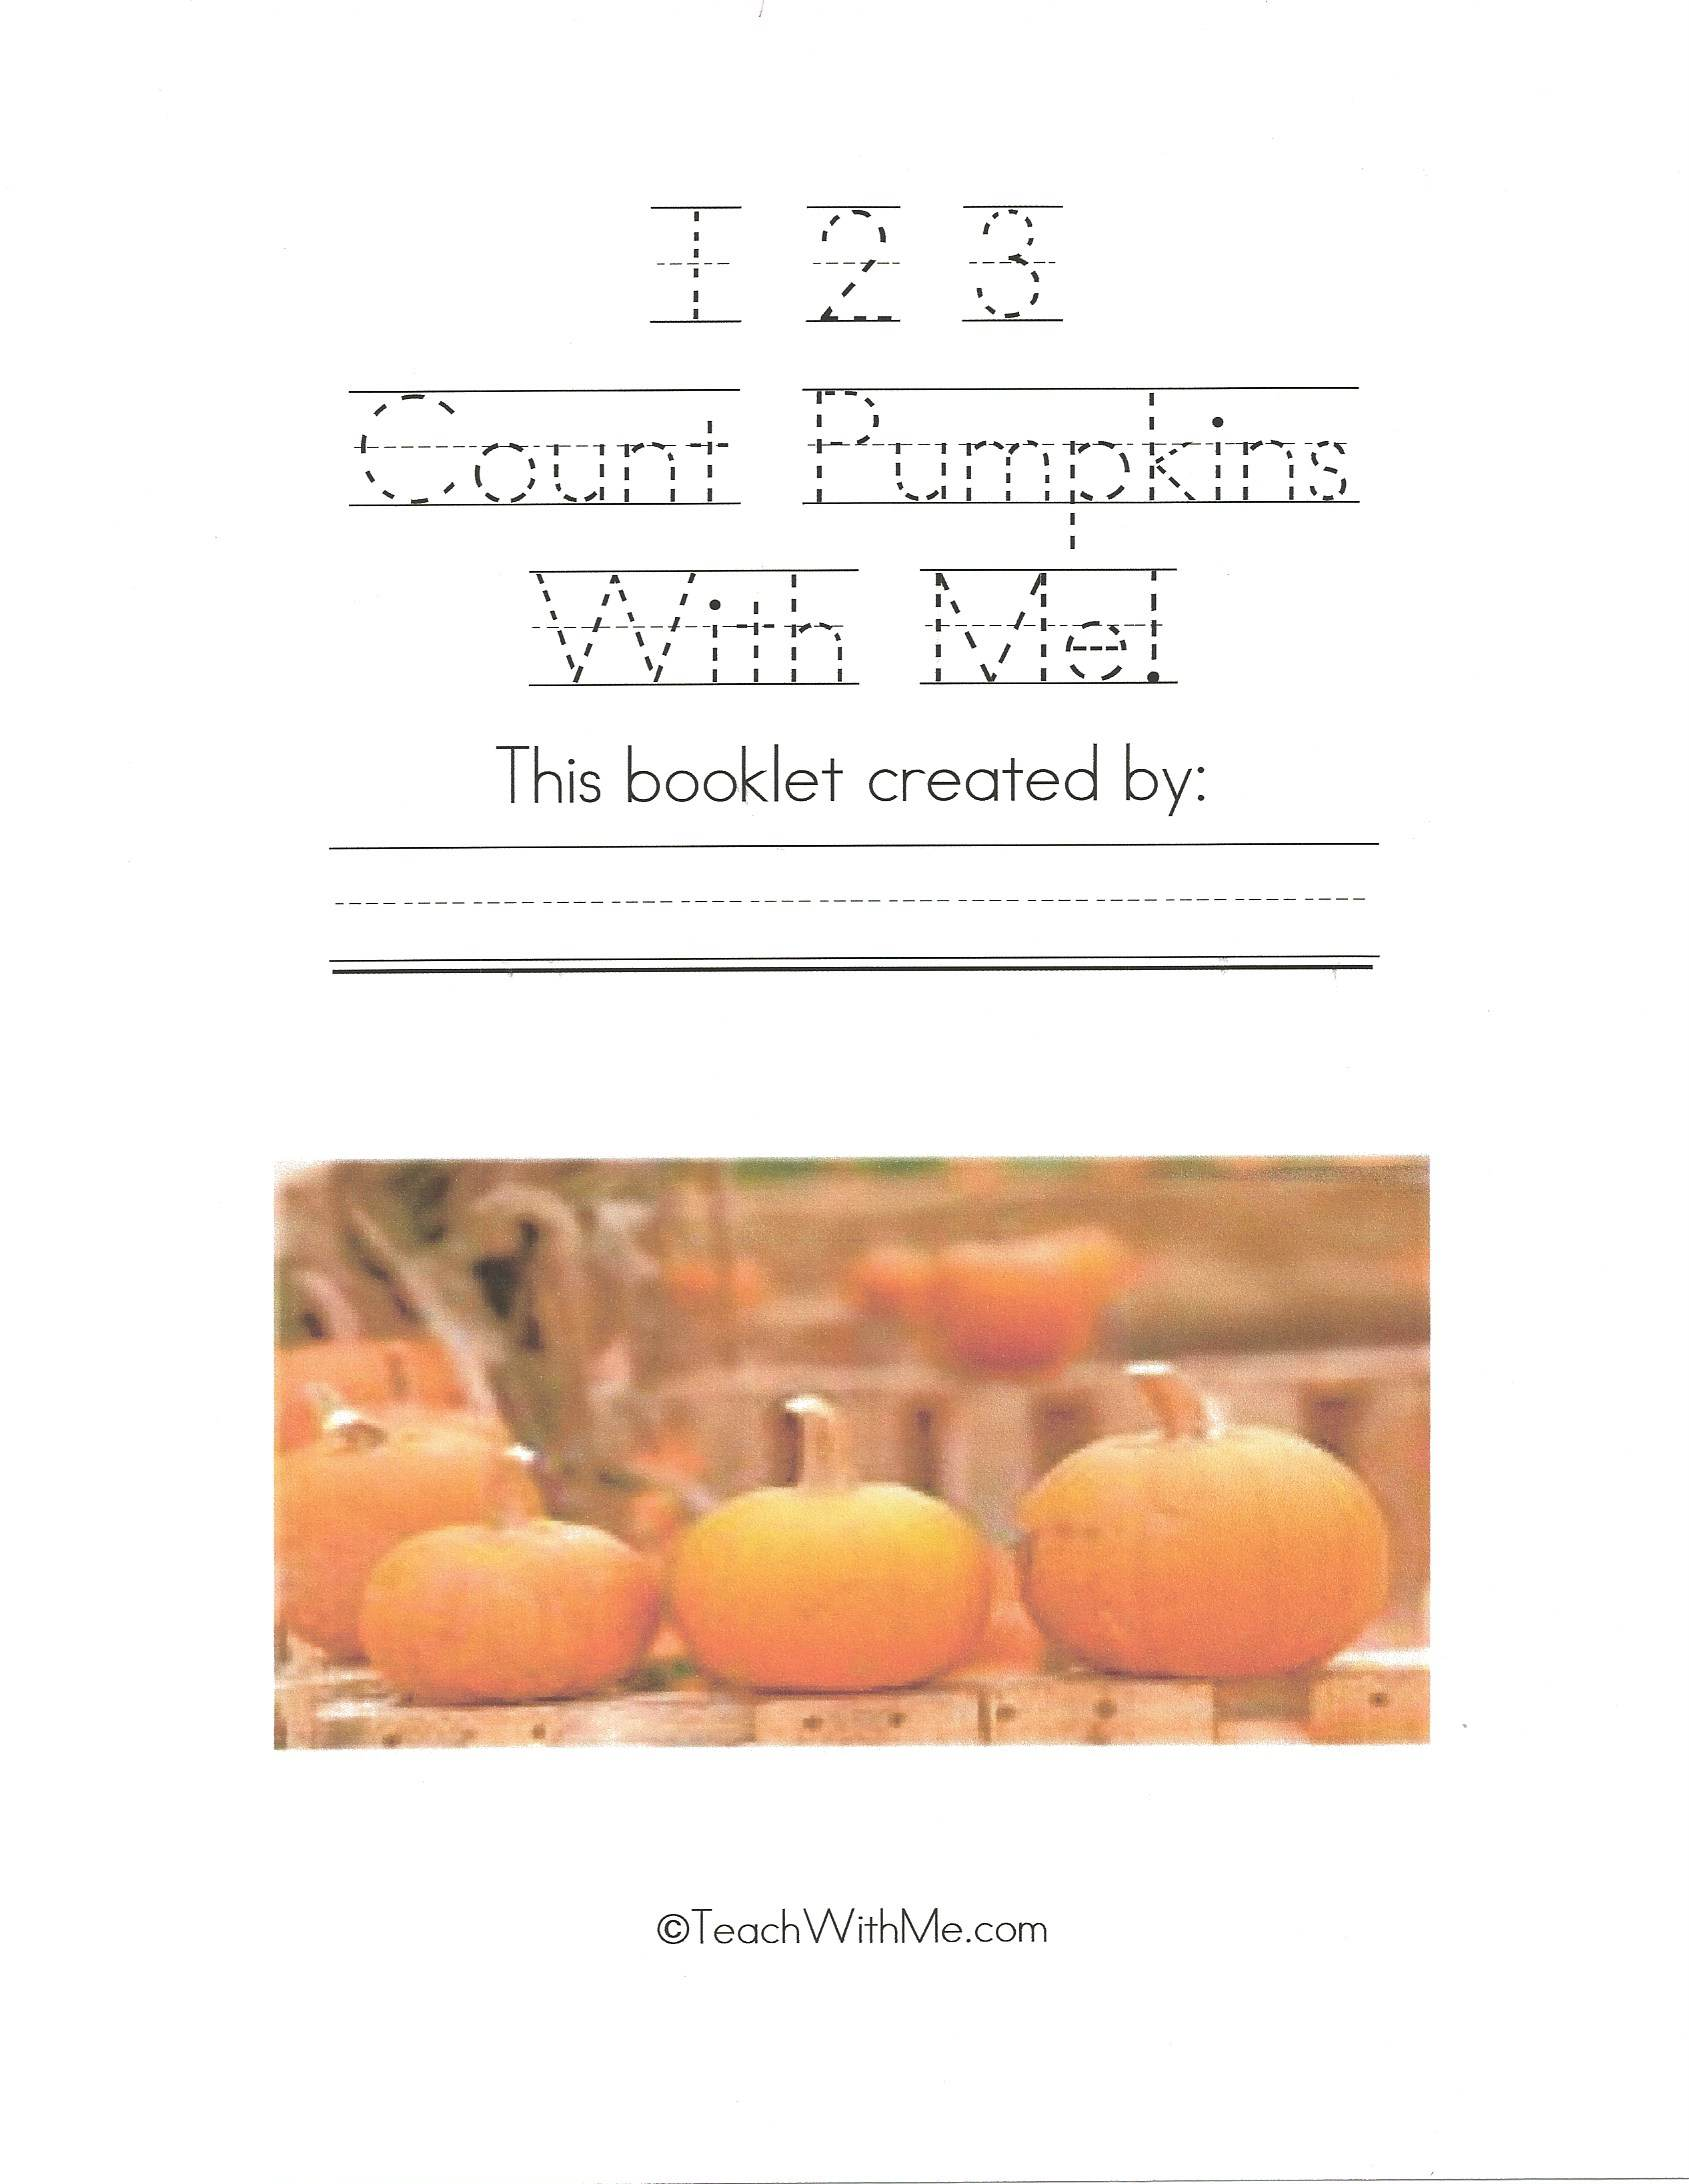 pumpkin activities, 10 frames, 10 frame templates, coin activities, coin booklet, counting coins, pumpkin money, 10 frame activities, pumpkin math, pumppin centers, pumpkin songs, pumpkin crafts, pumpkin activities, pumpkin puppets, pumpkin easy readers